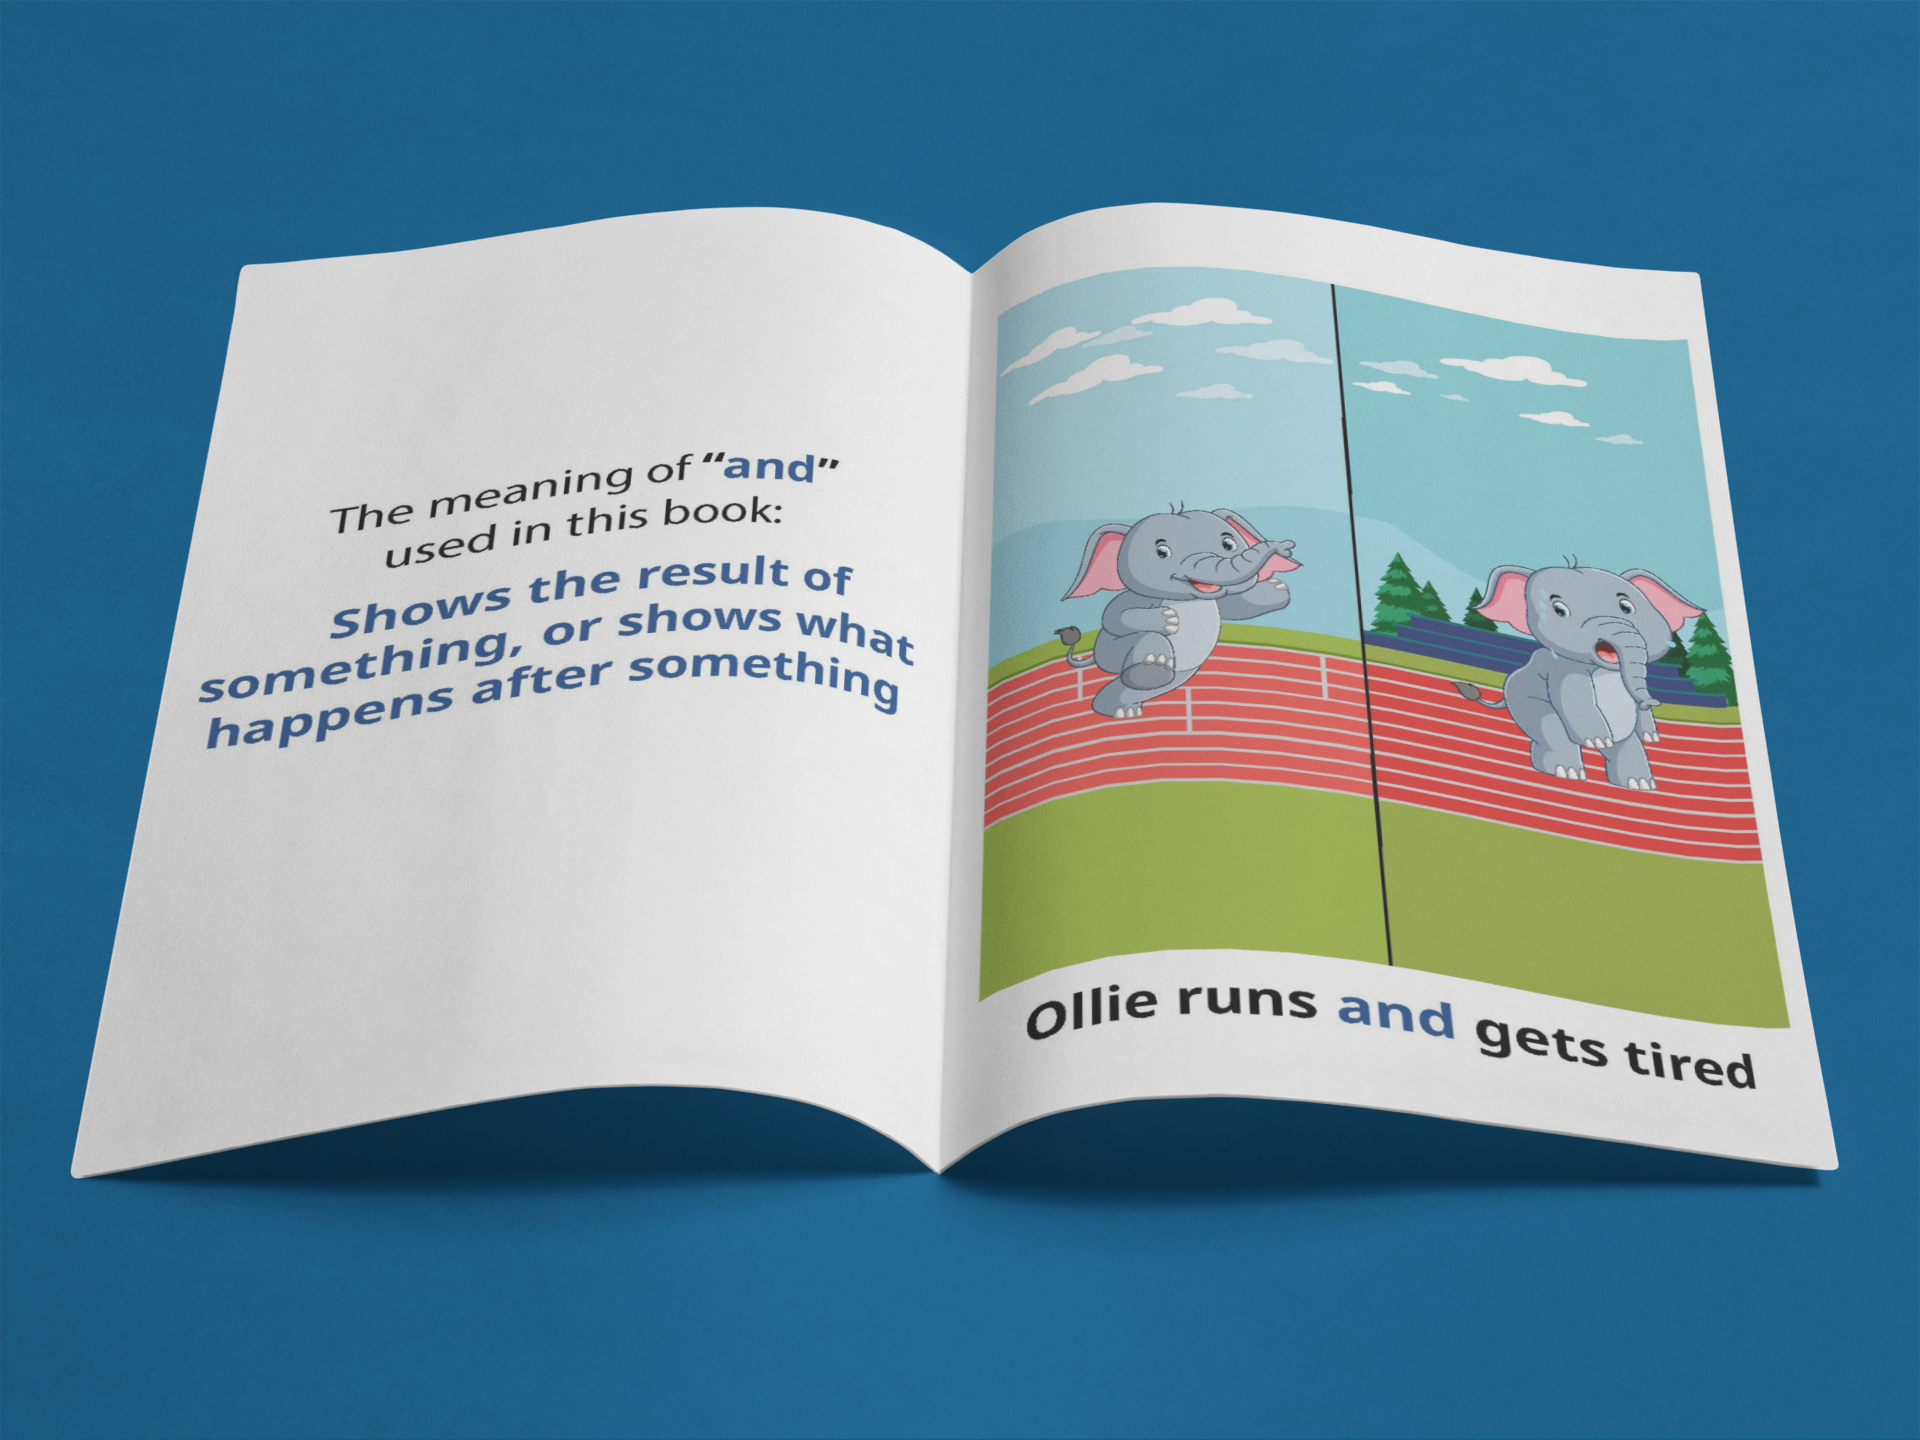 Ollie runs and gets tired booklet